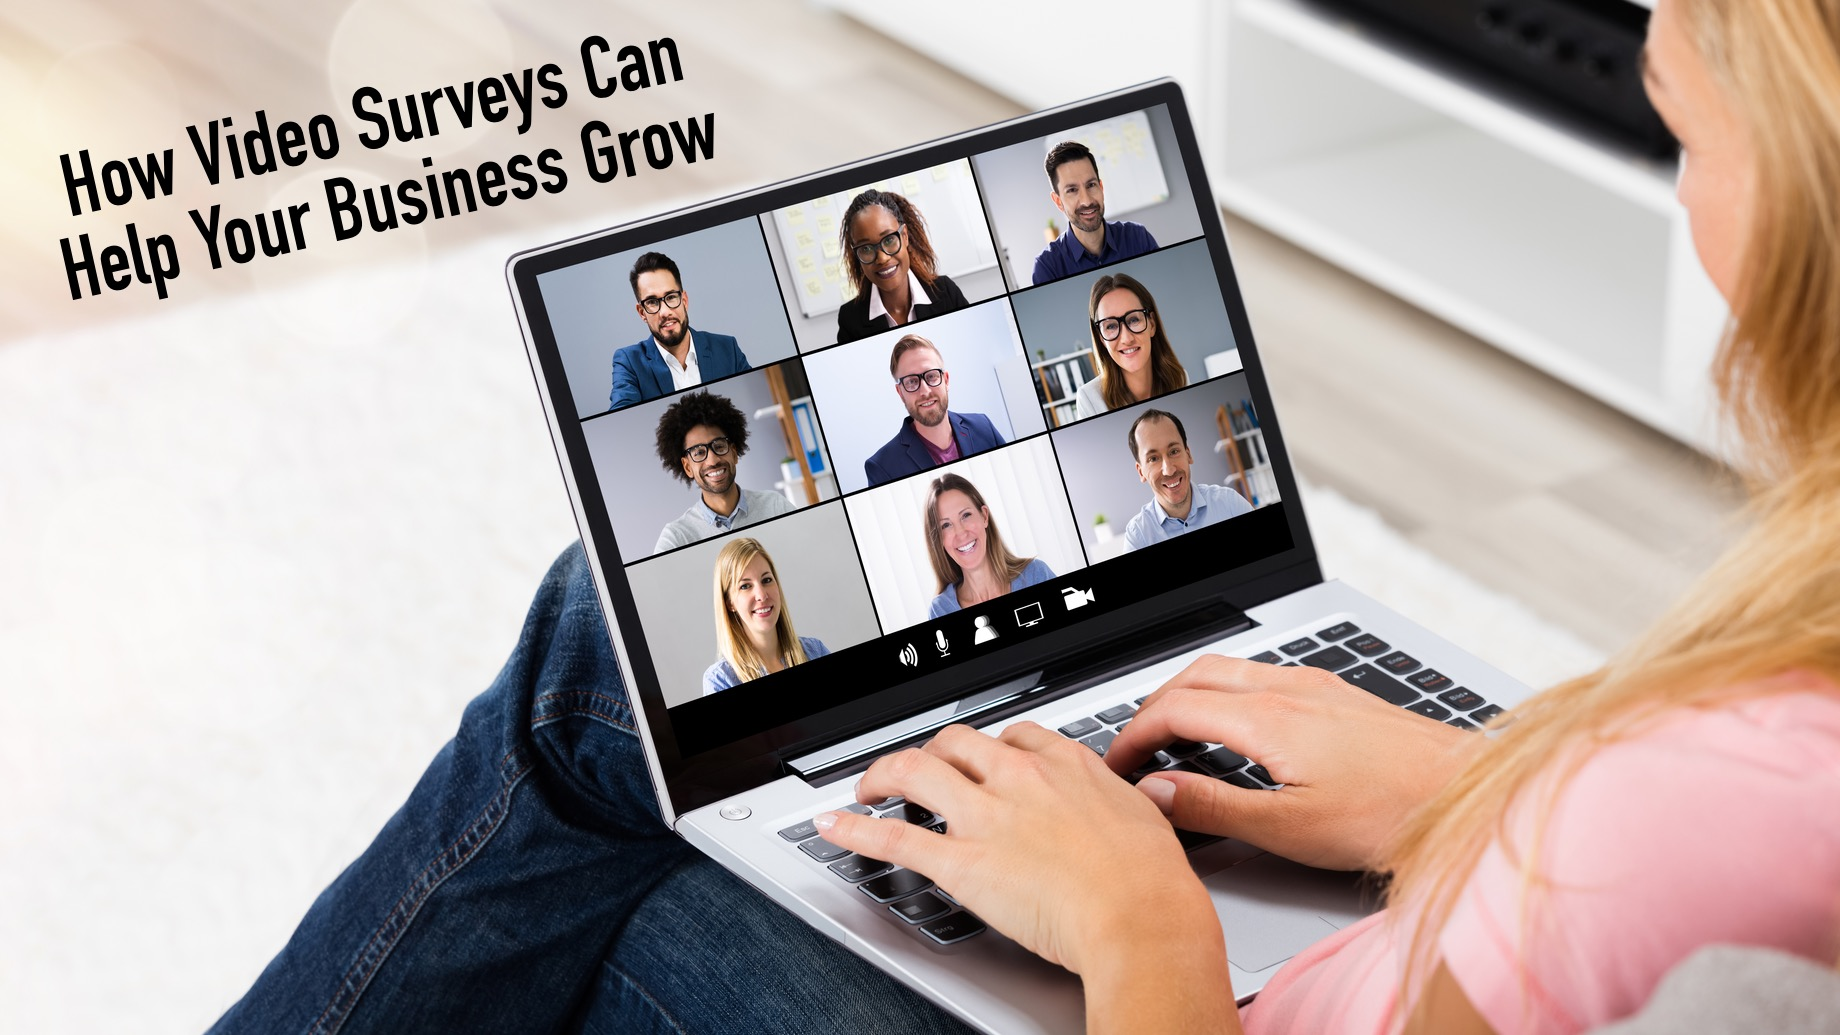 How Video Surveys Can Help Your Business Grow